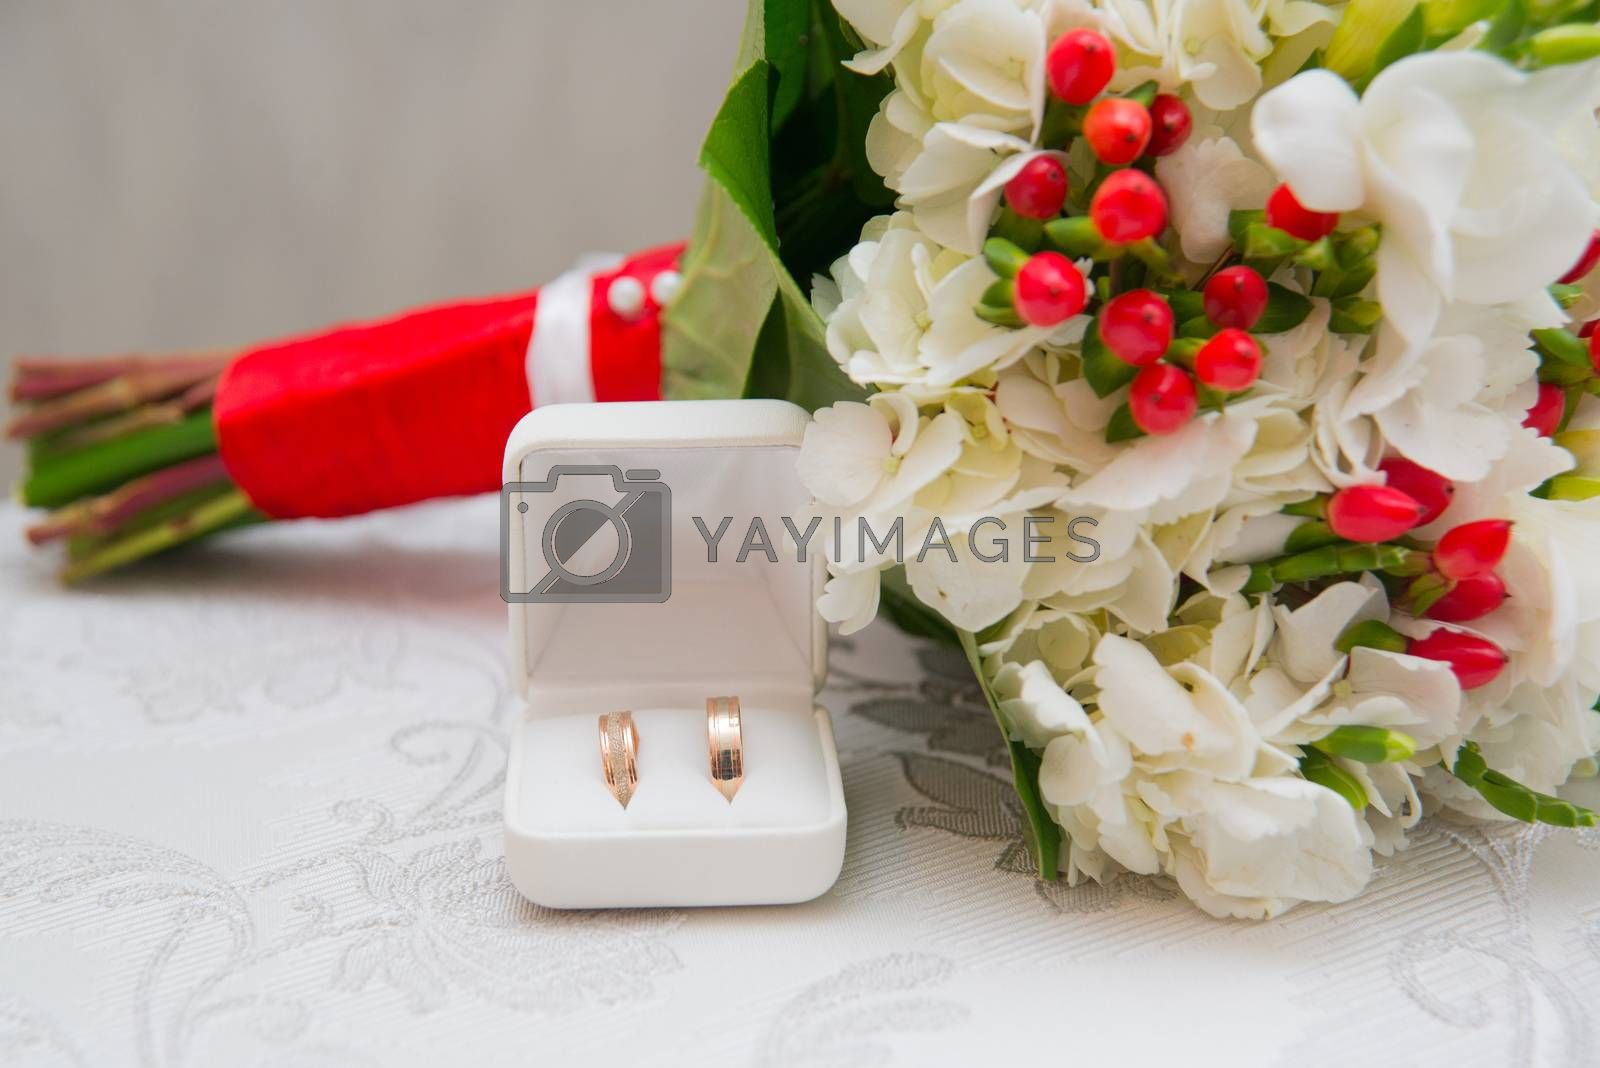 Two Golden wedding rings in white box and bouquet with white flowers and red berries on the table